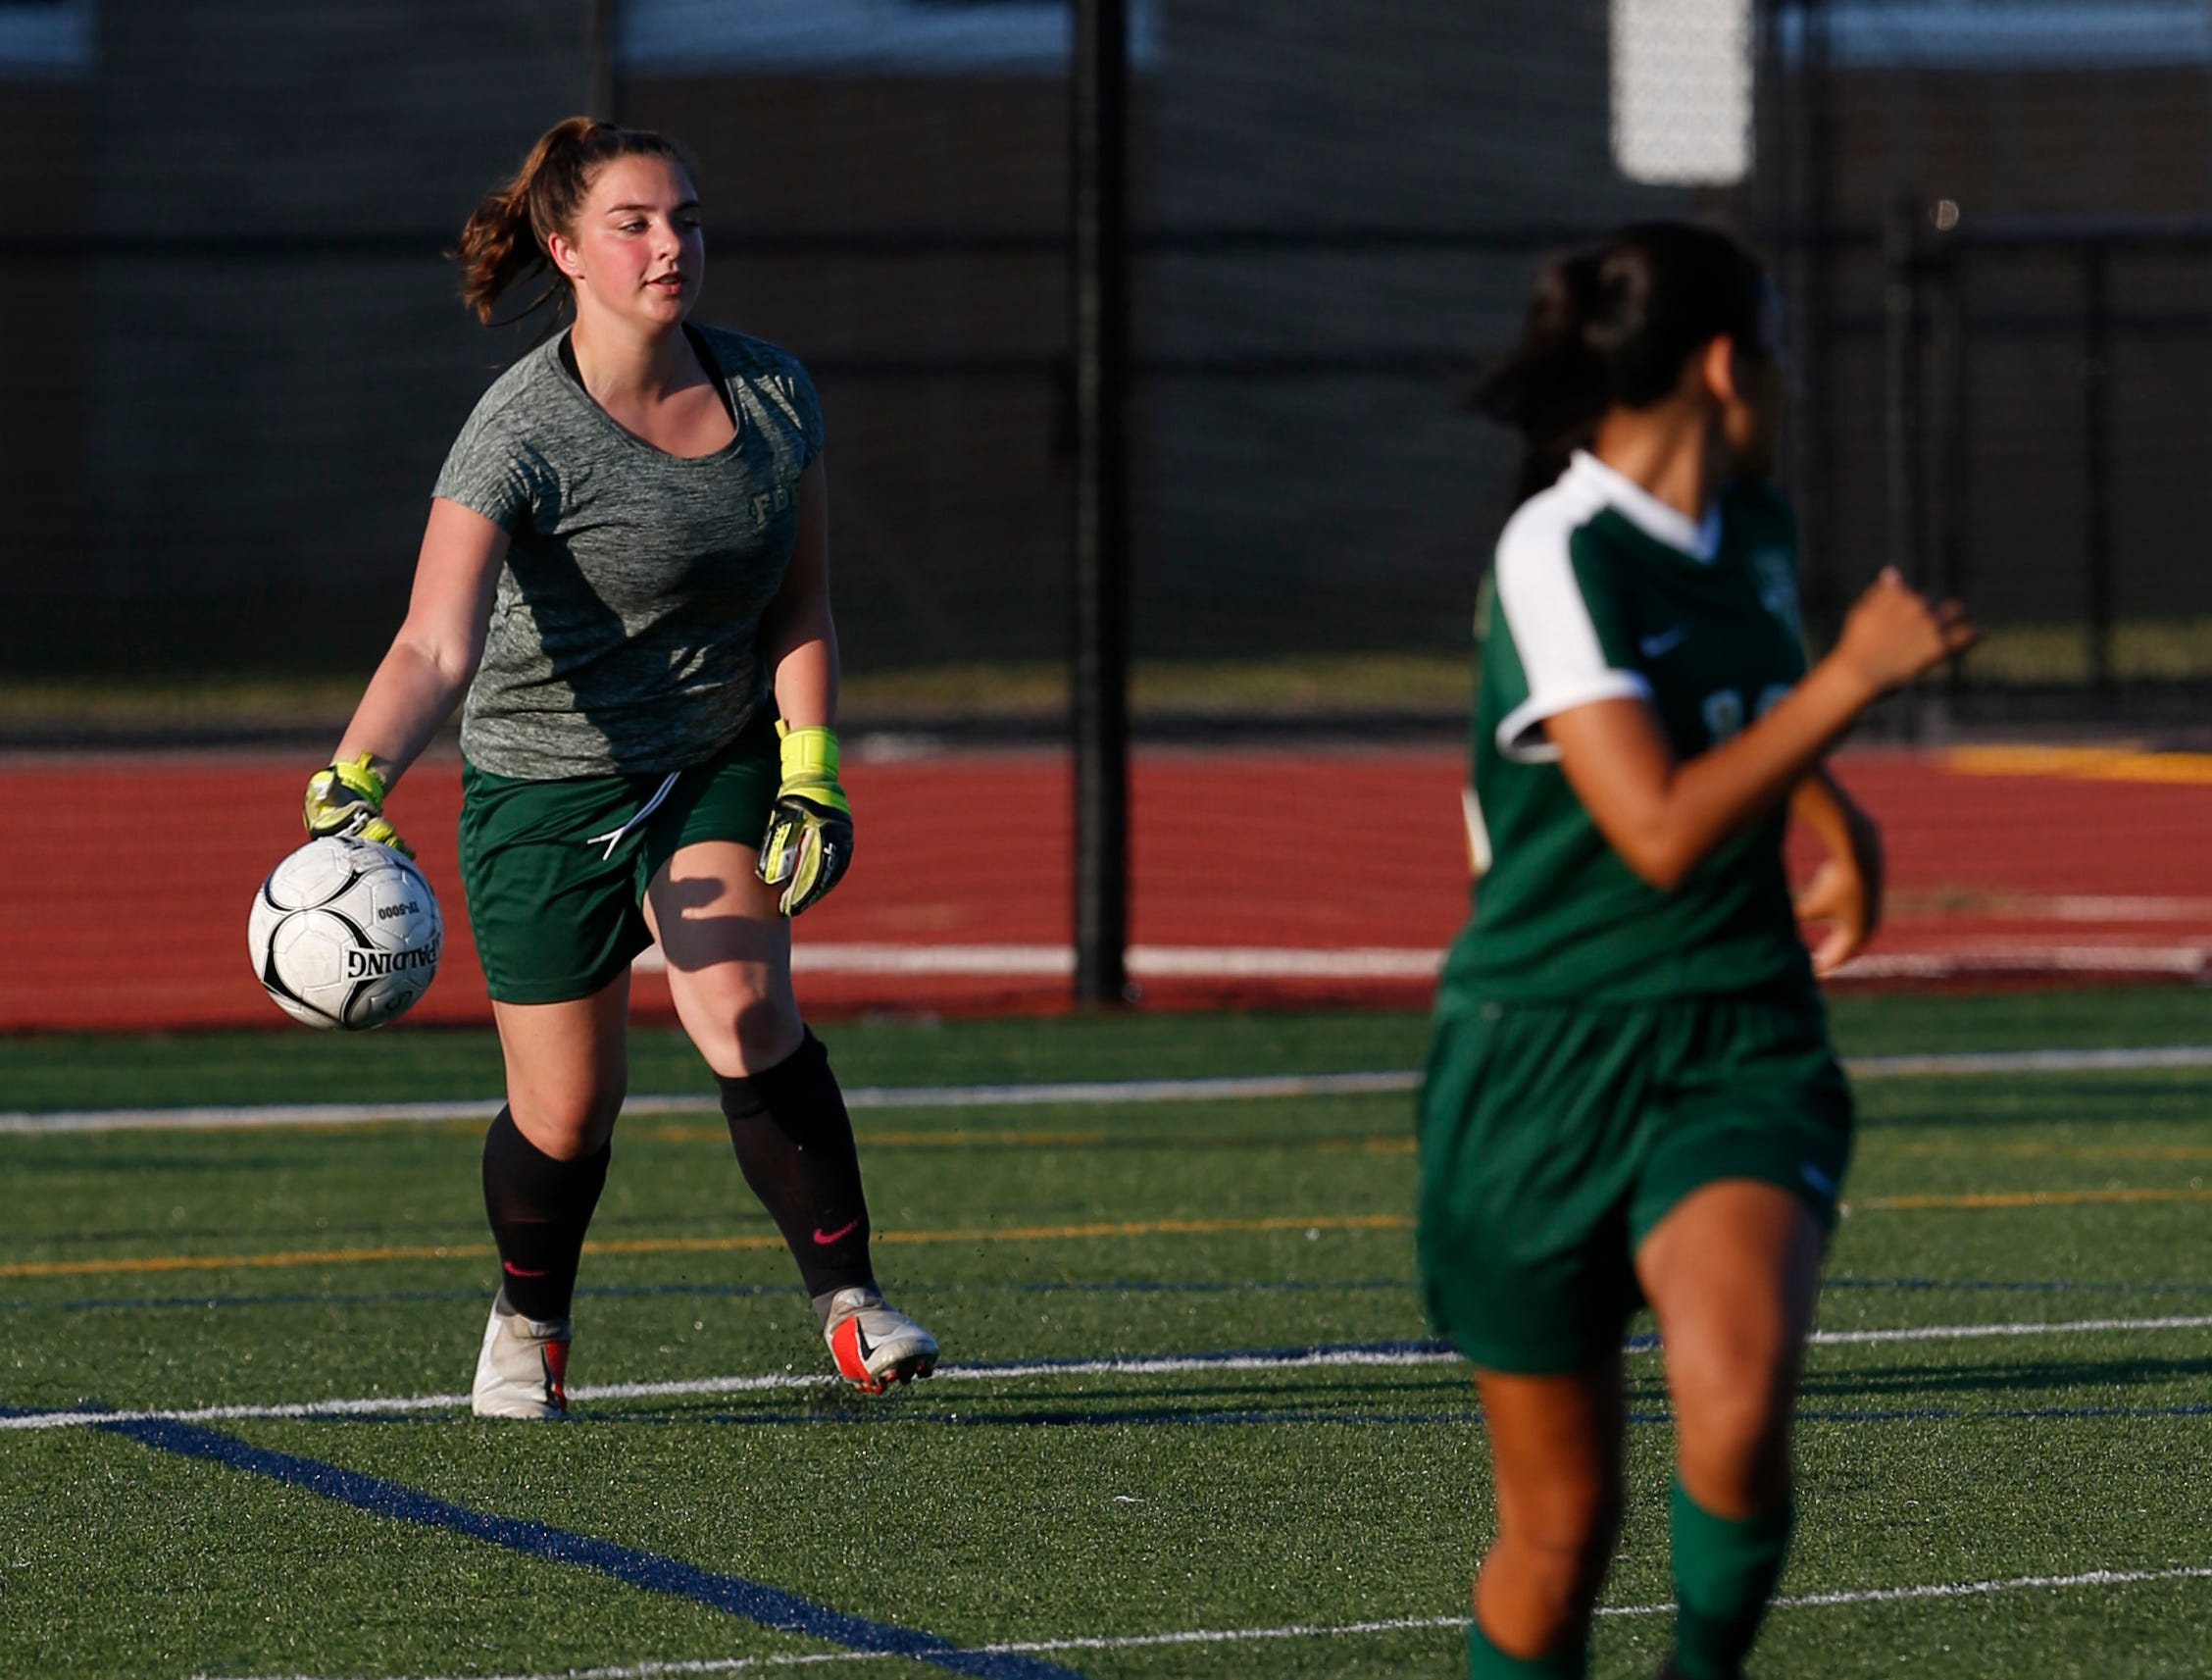 FDR's Alana Cathcart throws the ball back into play during Wednesday's game in Hyde Park on September 5, 2018.